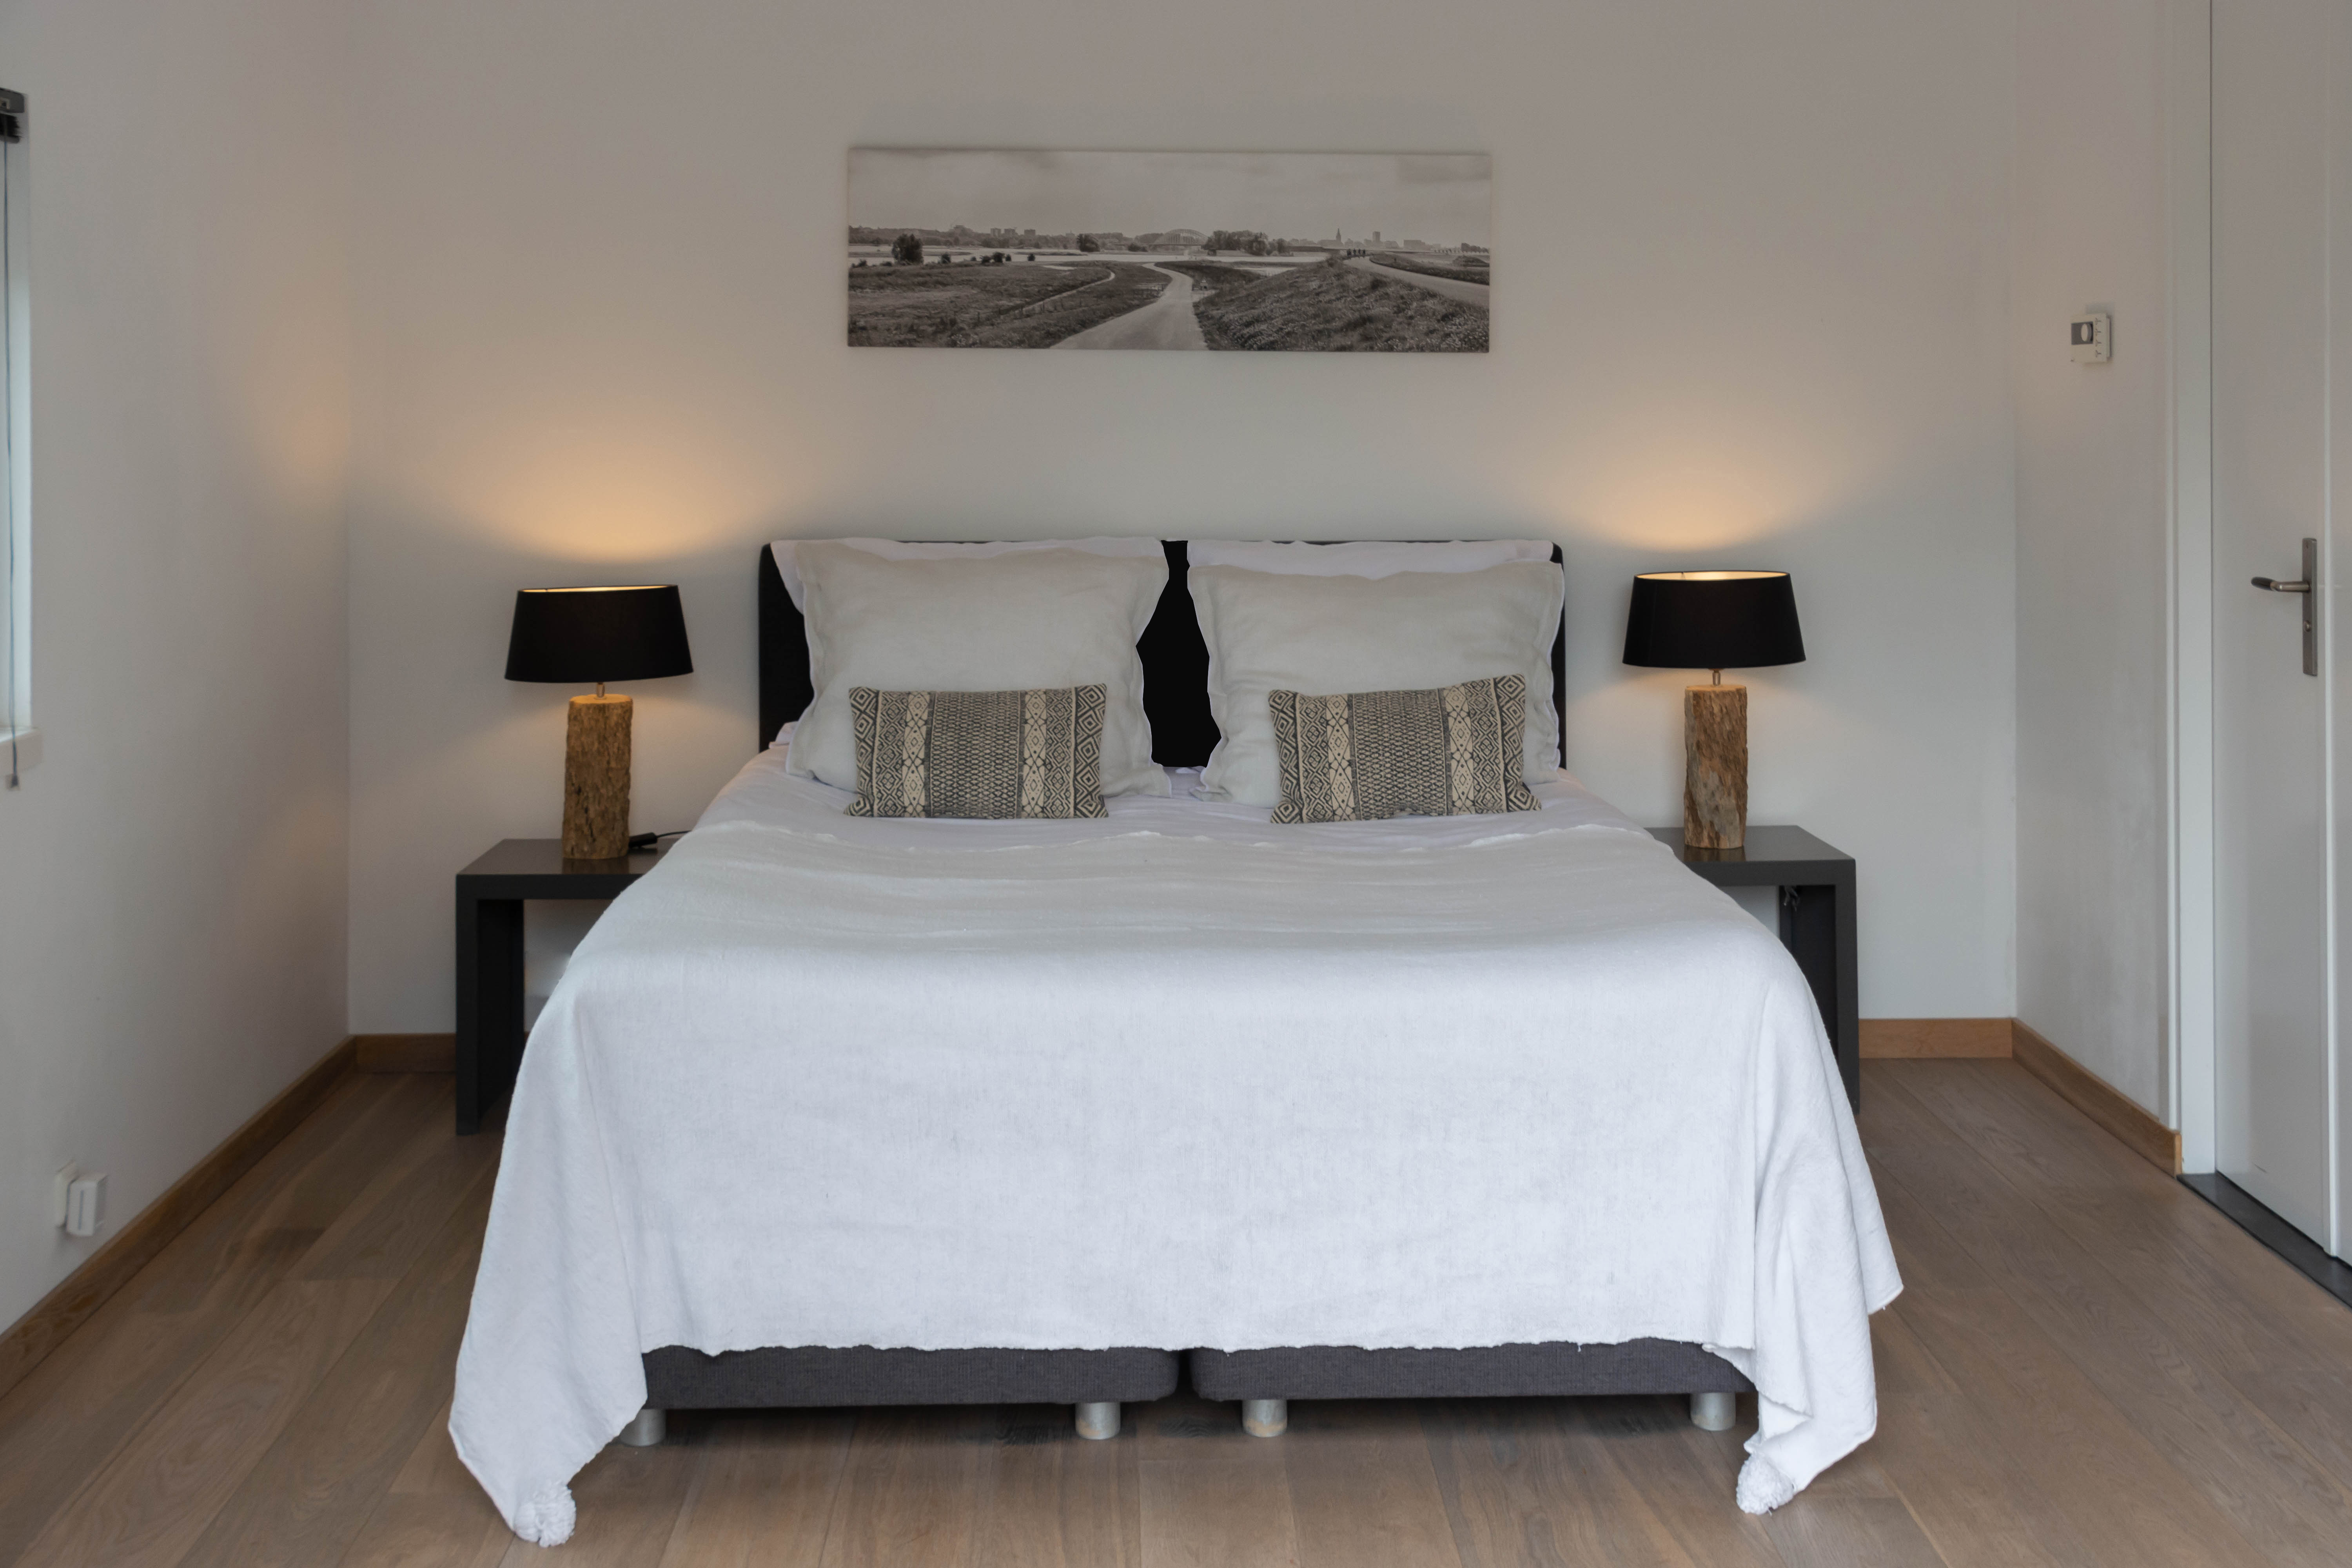 Bed huisappartement